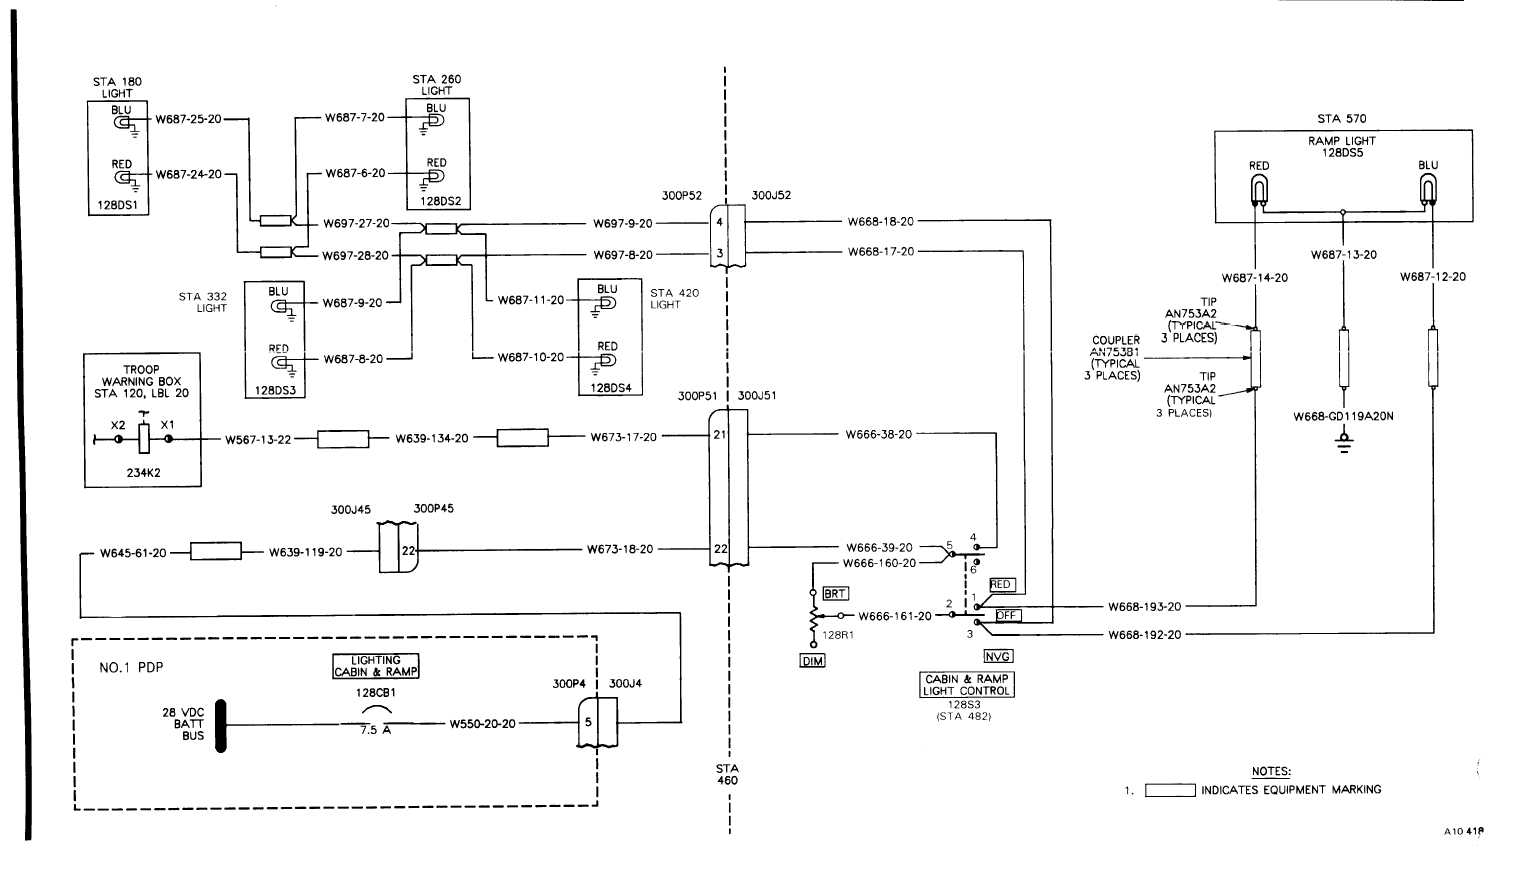 TM 55 1520 240 T 2_890_1 wiring diagram for massey ferguson 240 the wiring diagram cucv cabin wiring harness at gsmx.co